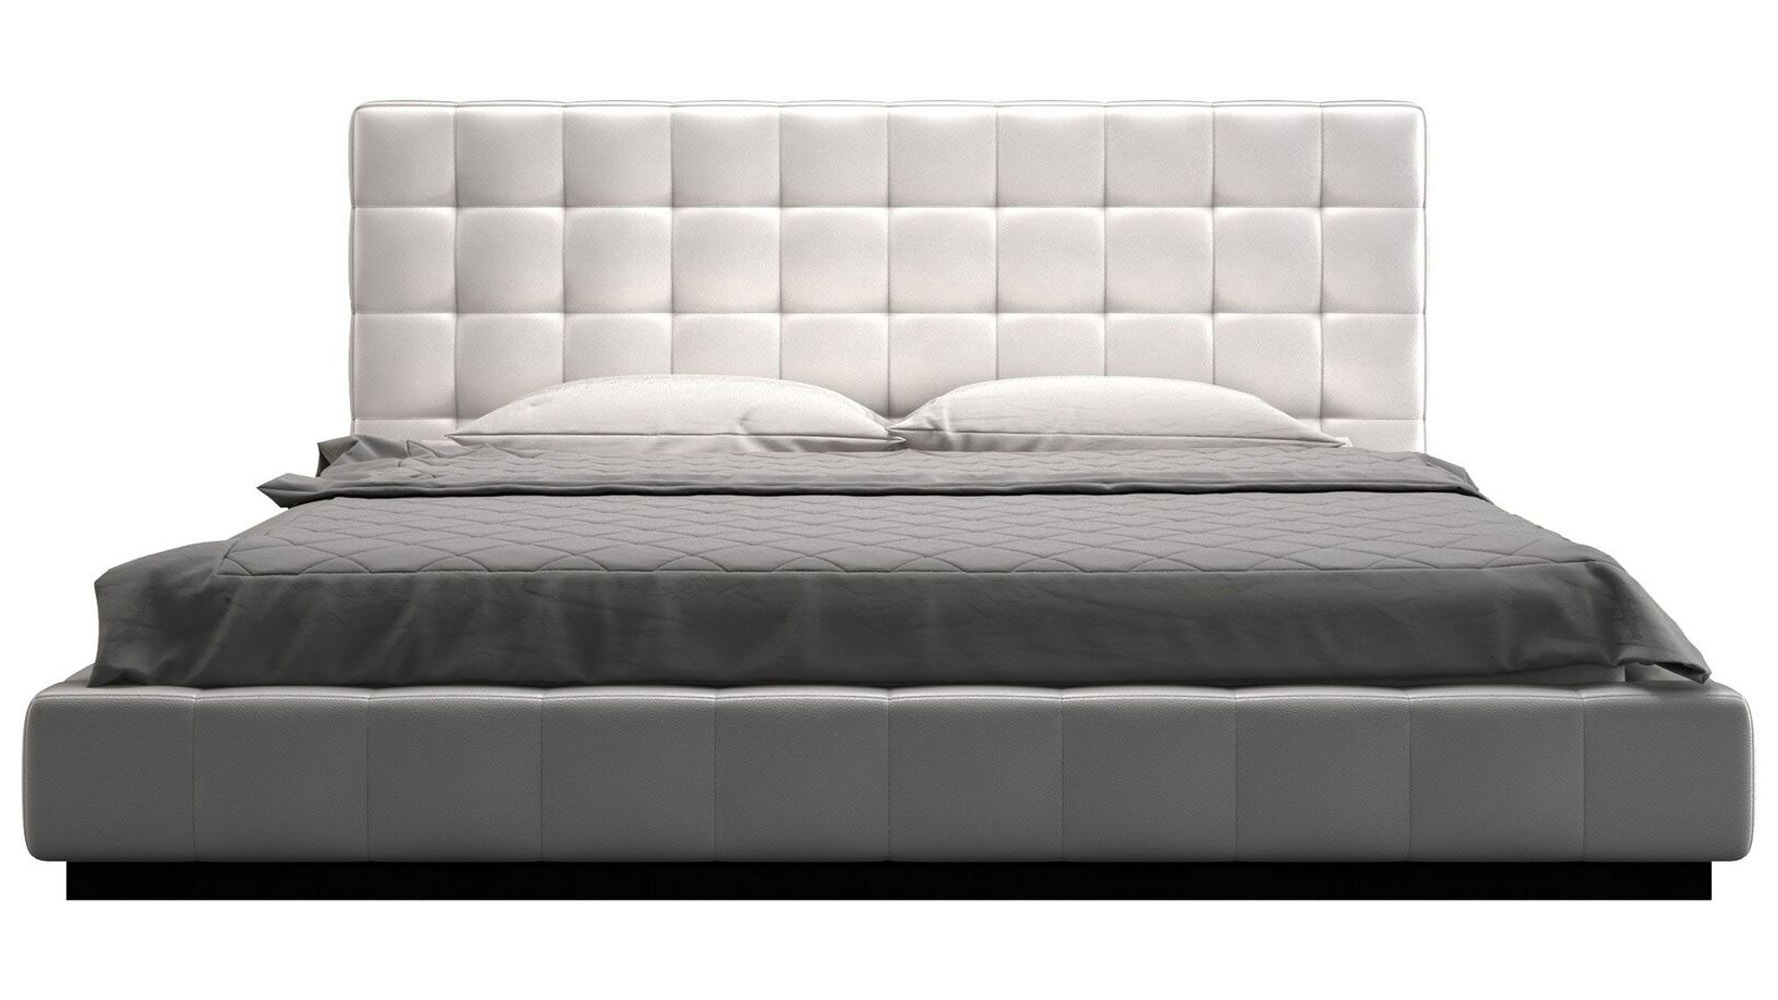 modern beds  contemporary beds  bedroom furniture  zuri furniture - verona bed  white